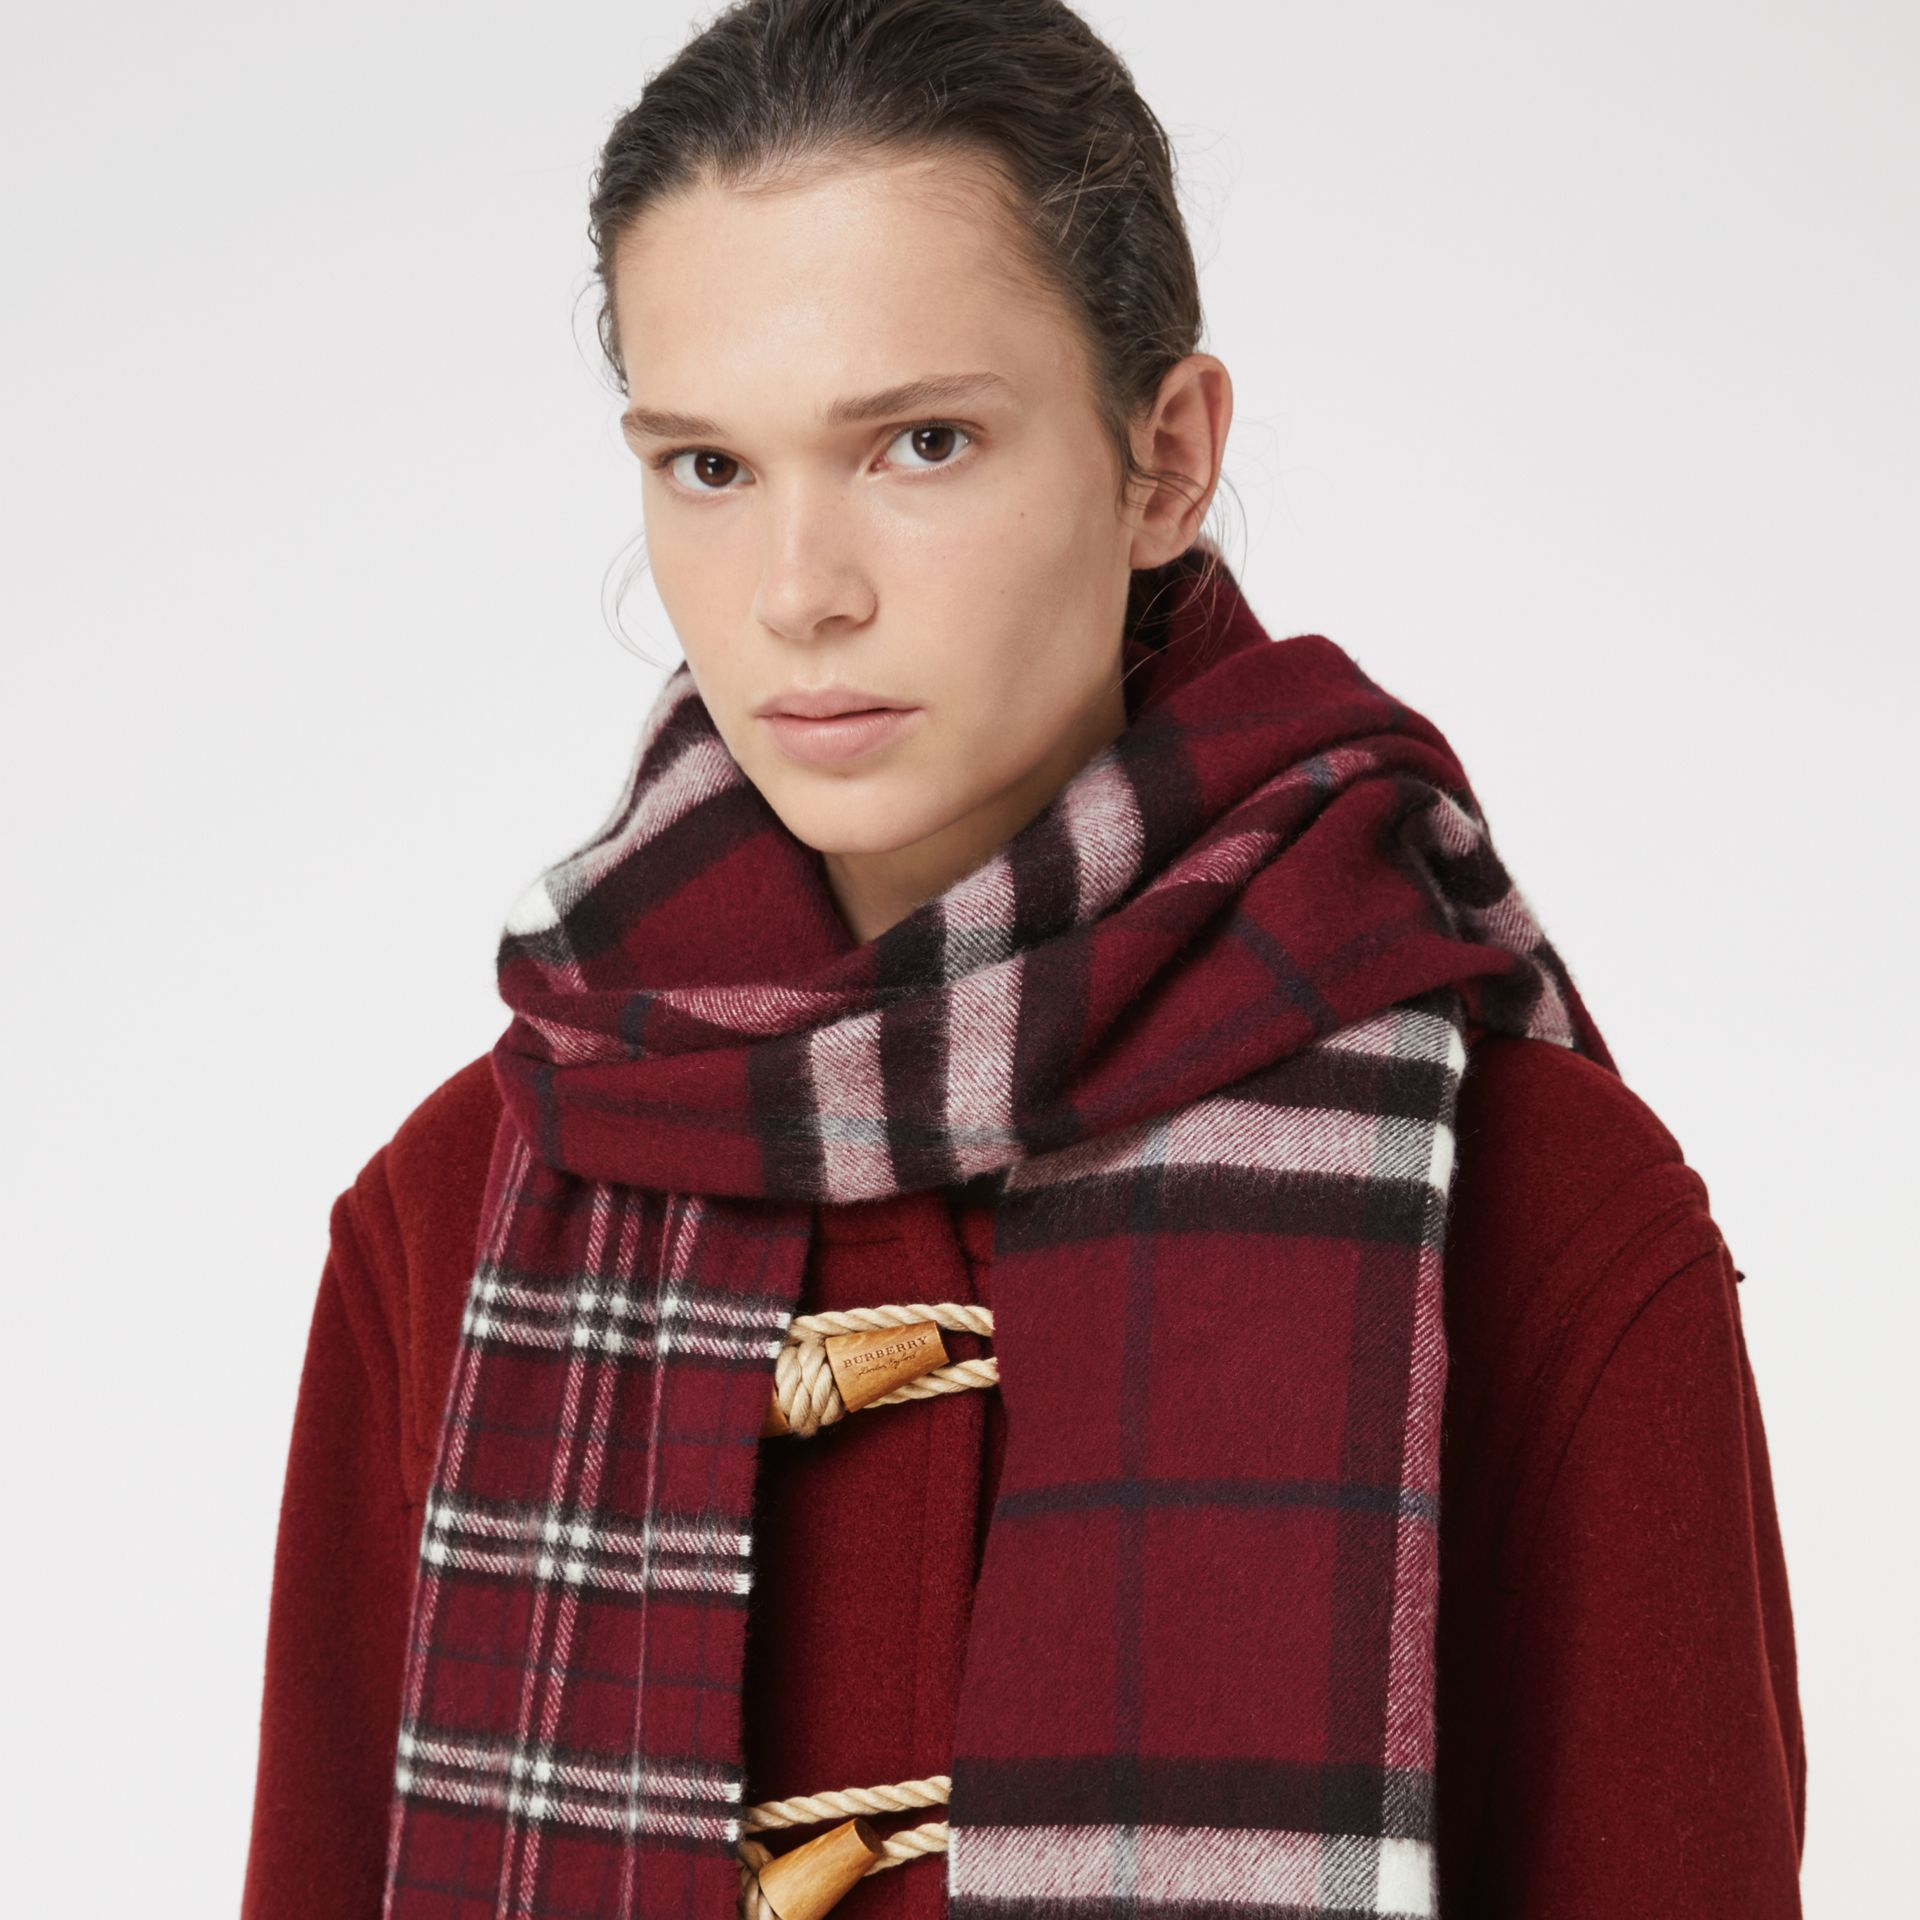 Écharpe en cachemire à motif check réversible Gosha x Burberry (Bordeaux) | Burberry - photo de la galerie 4